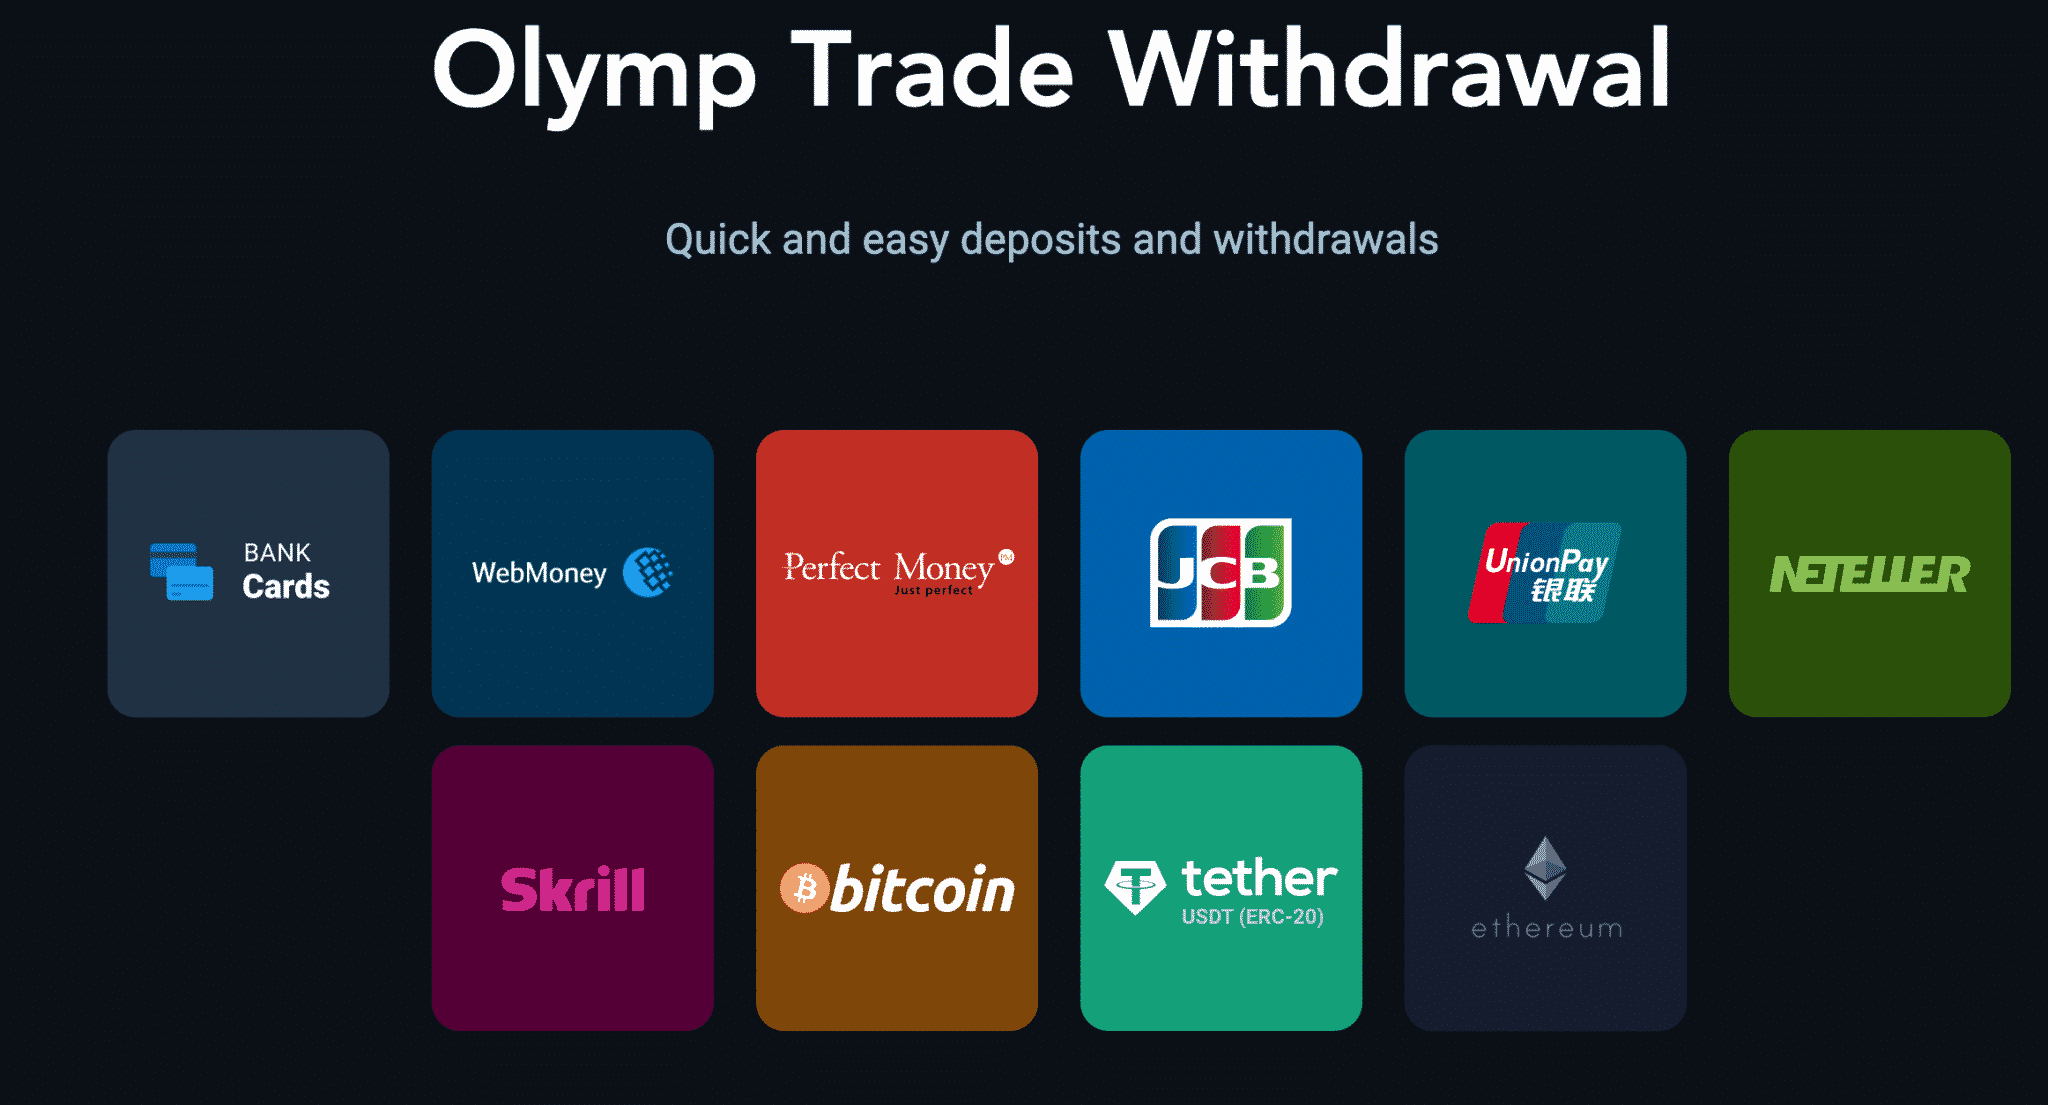 Olymp Trade Withdrawal